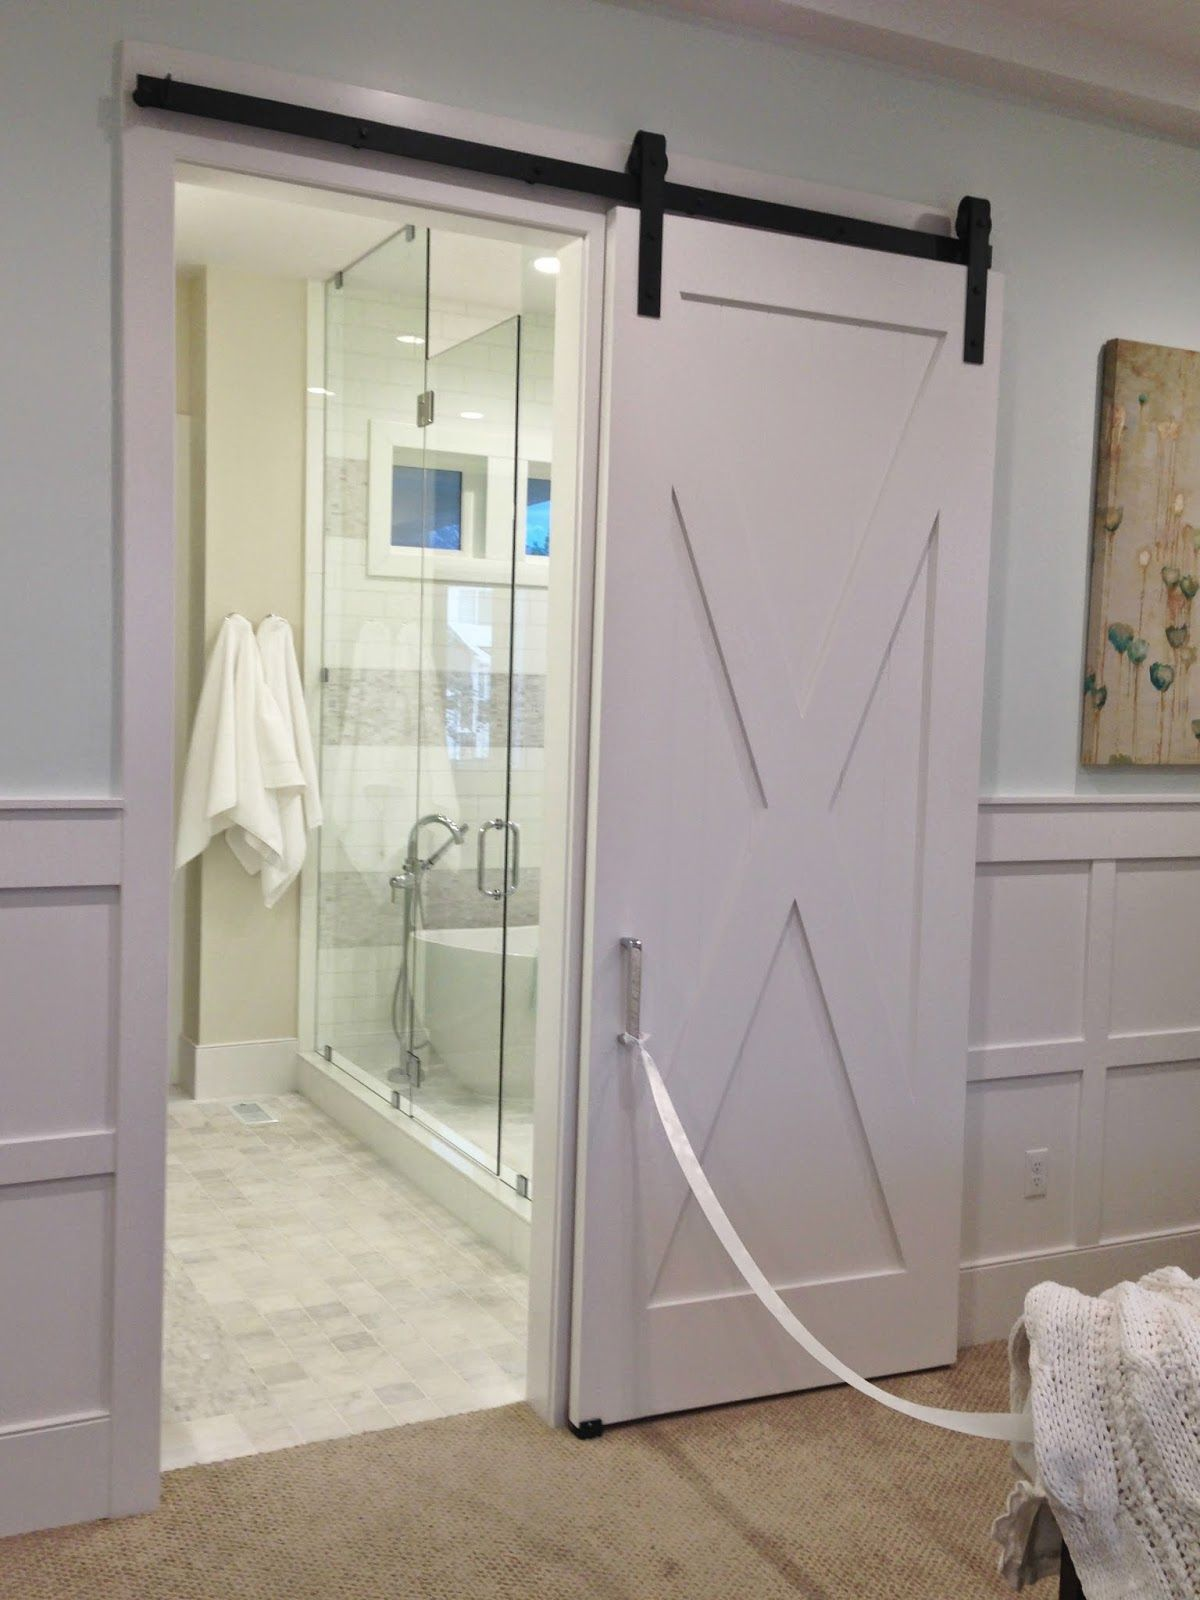 Genial Interior, Elegant White Barn Door For Home: Barn Doors For Your Unique Home